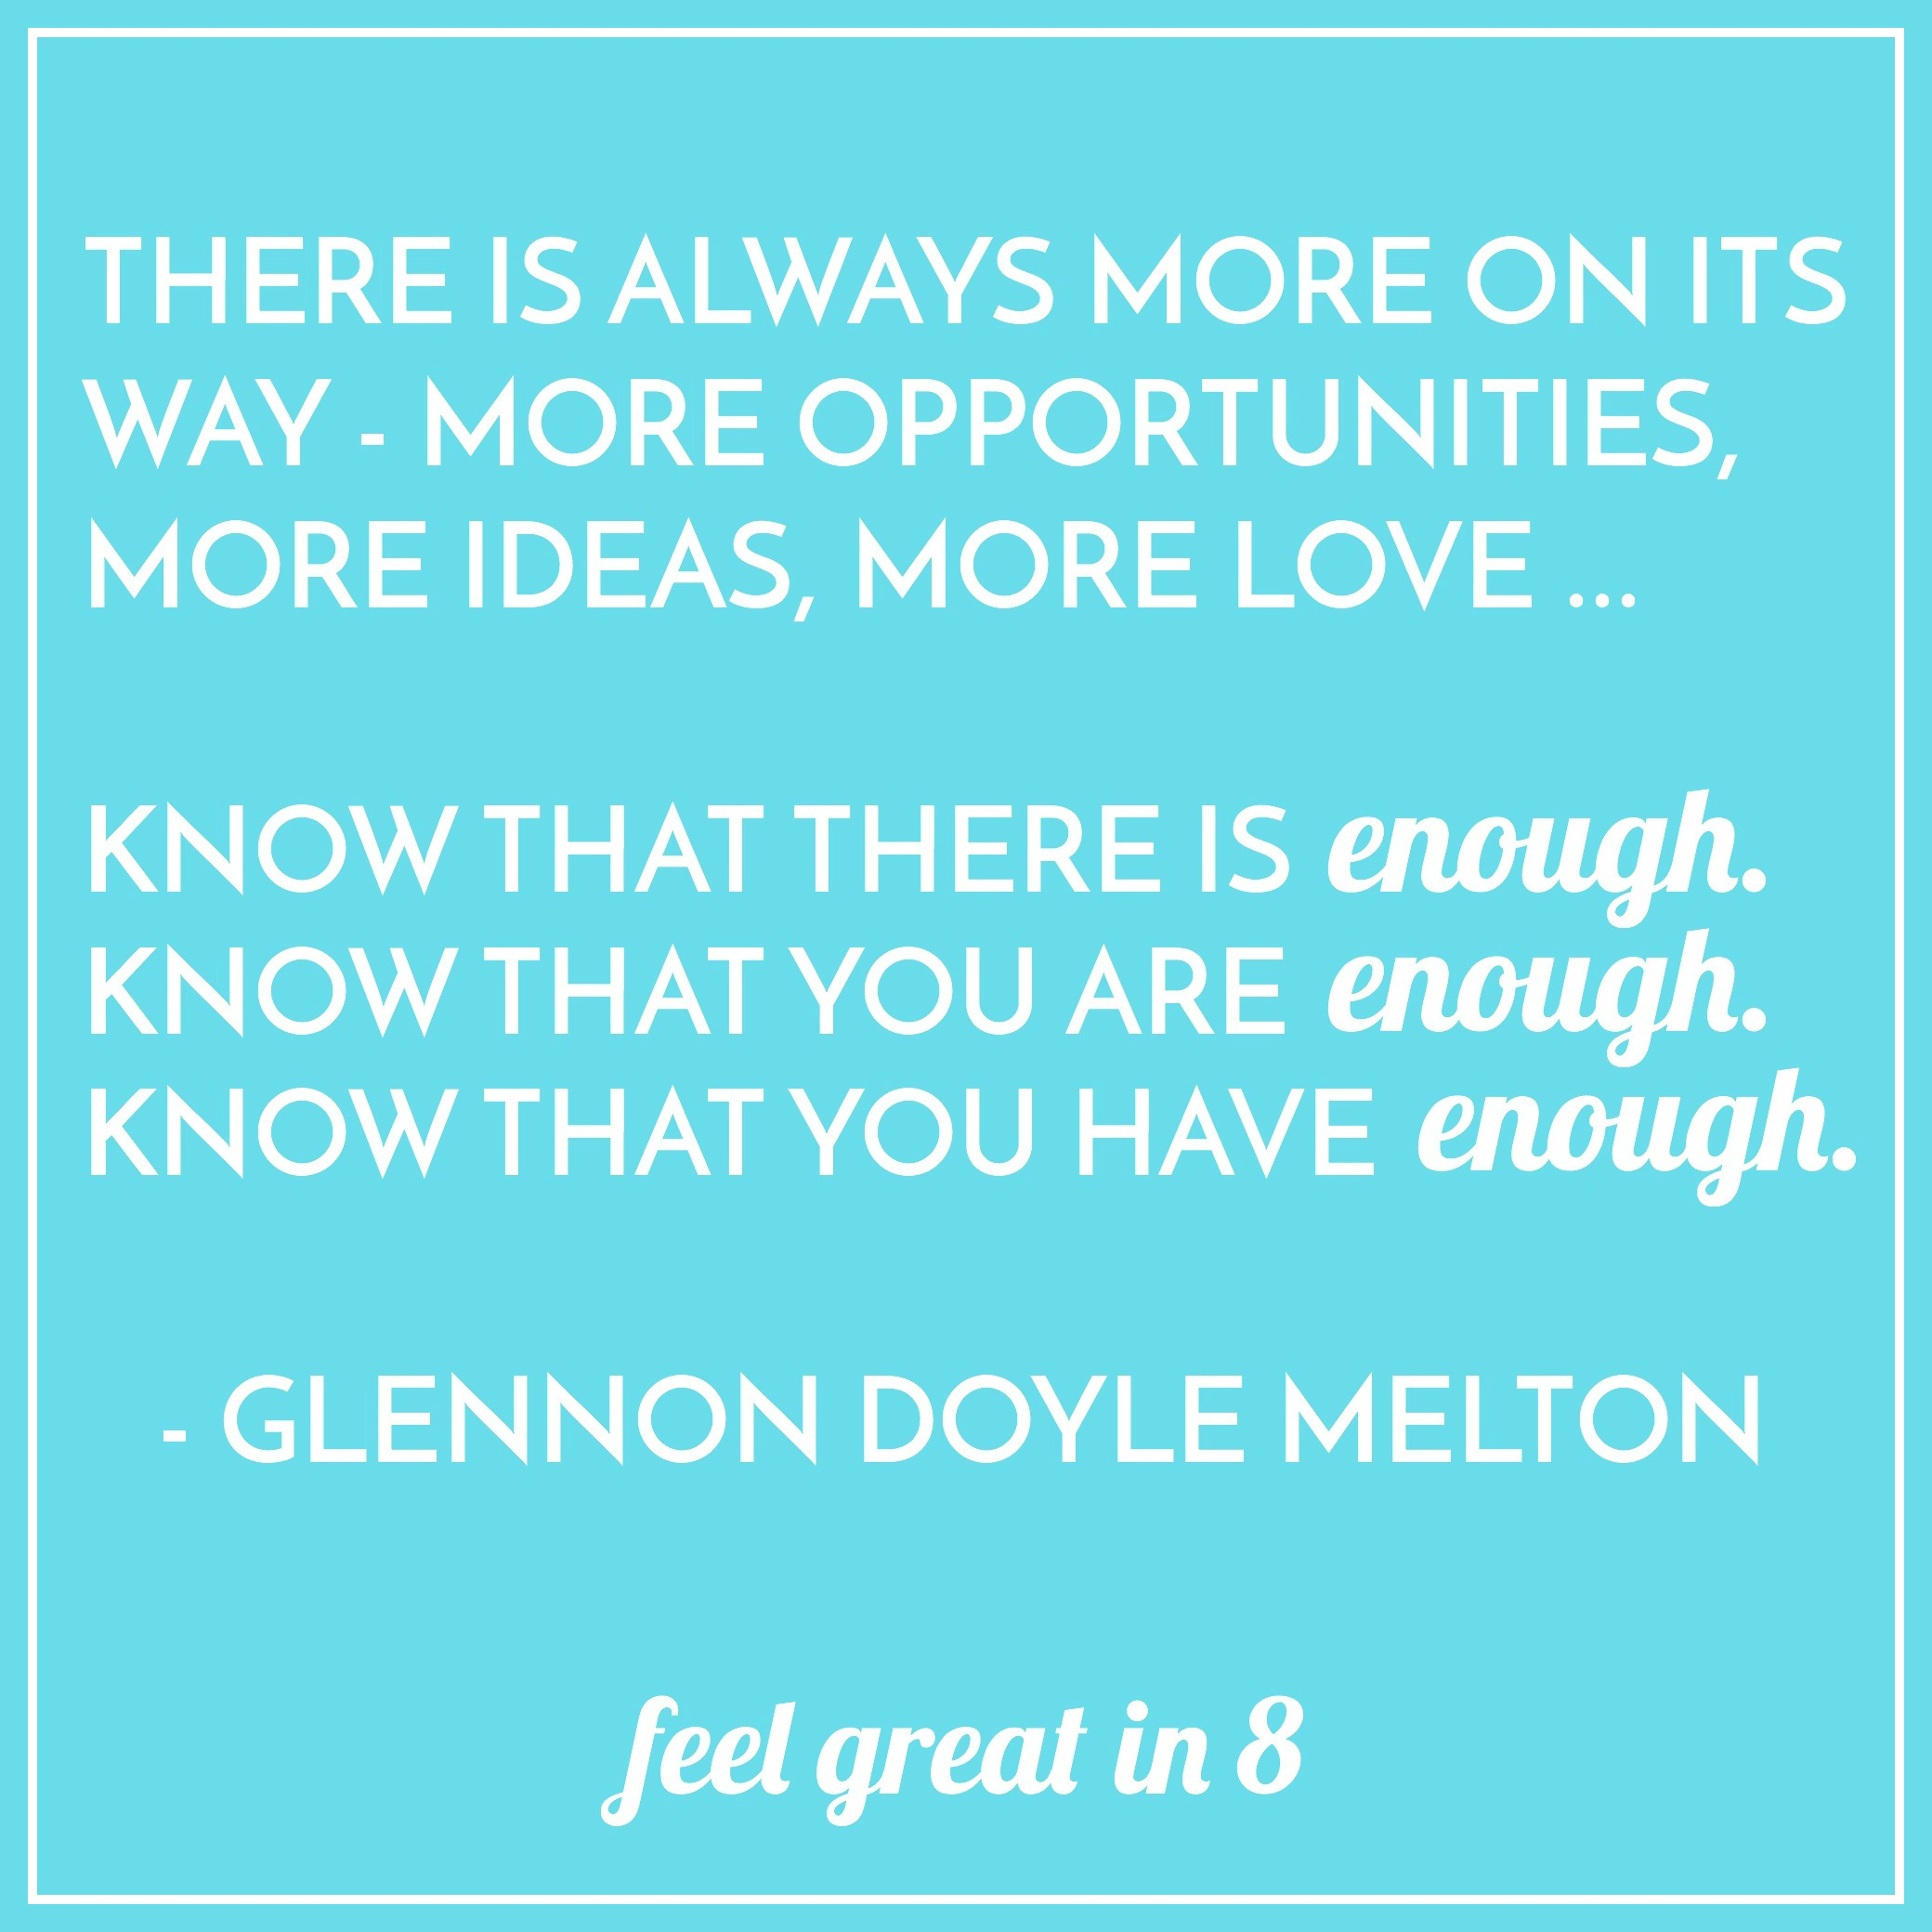 Glennon Doyle Melton Quotes Brilliant Glennon Doyle Melton Quotes Simple Best 25 Glennon Doyle Melton